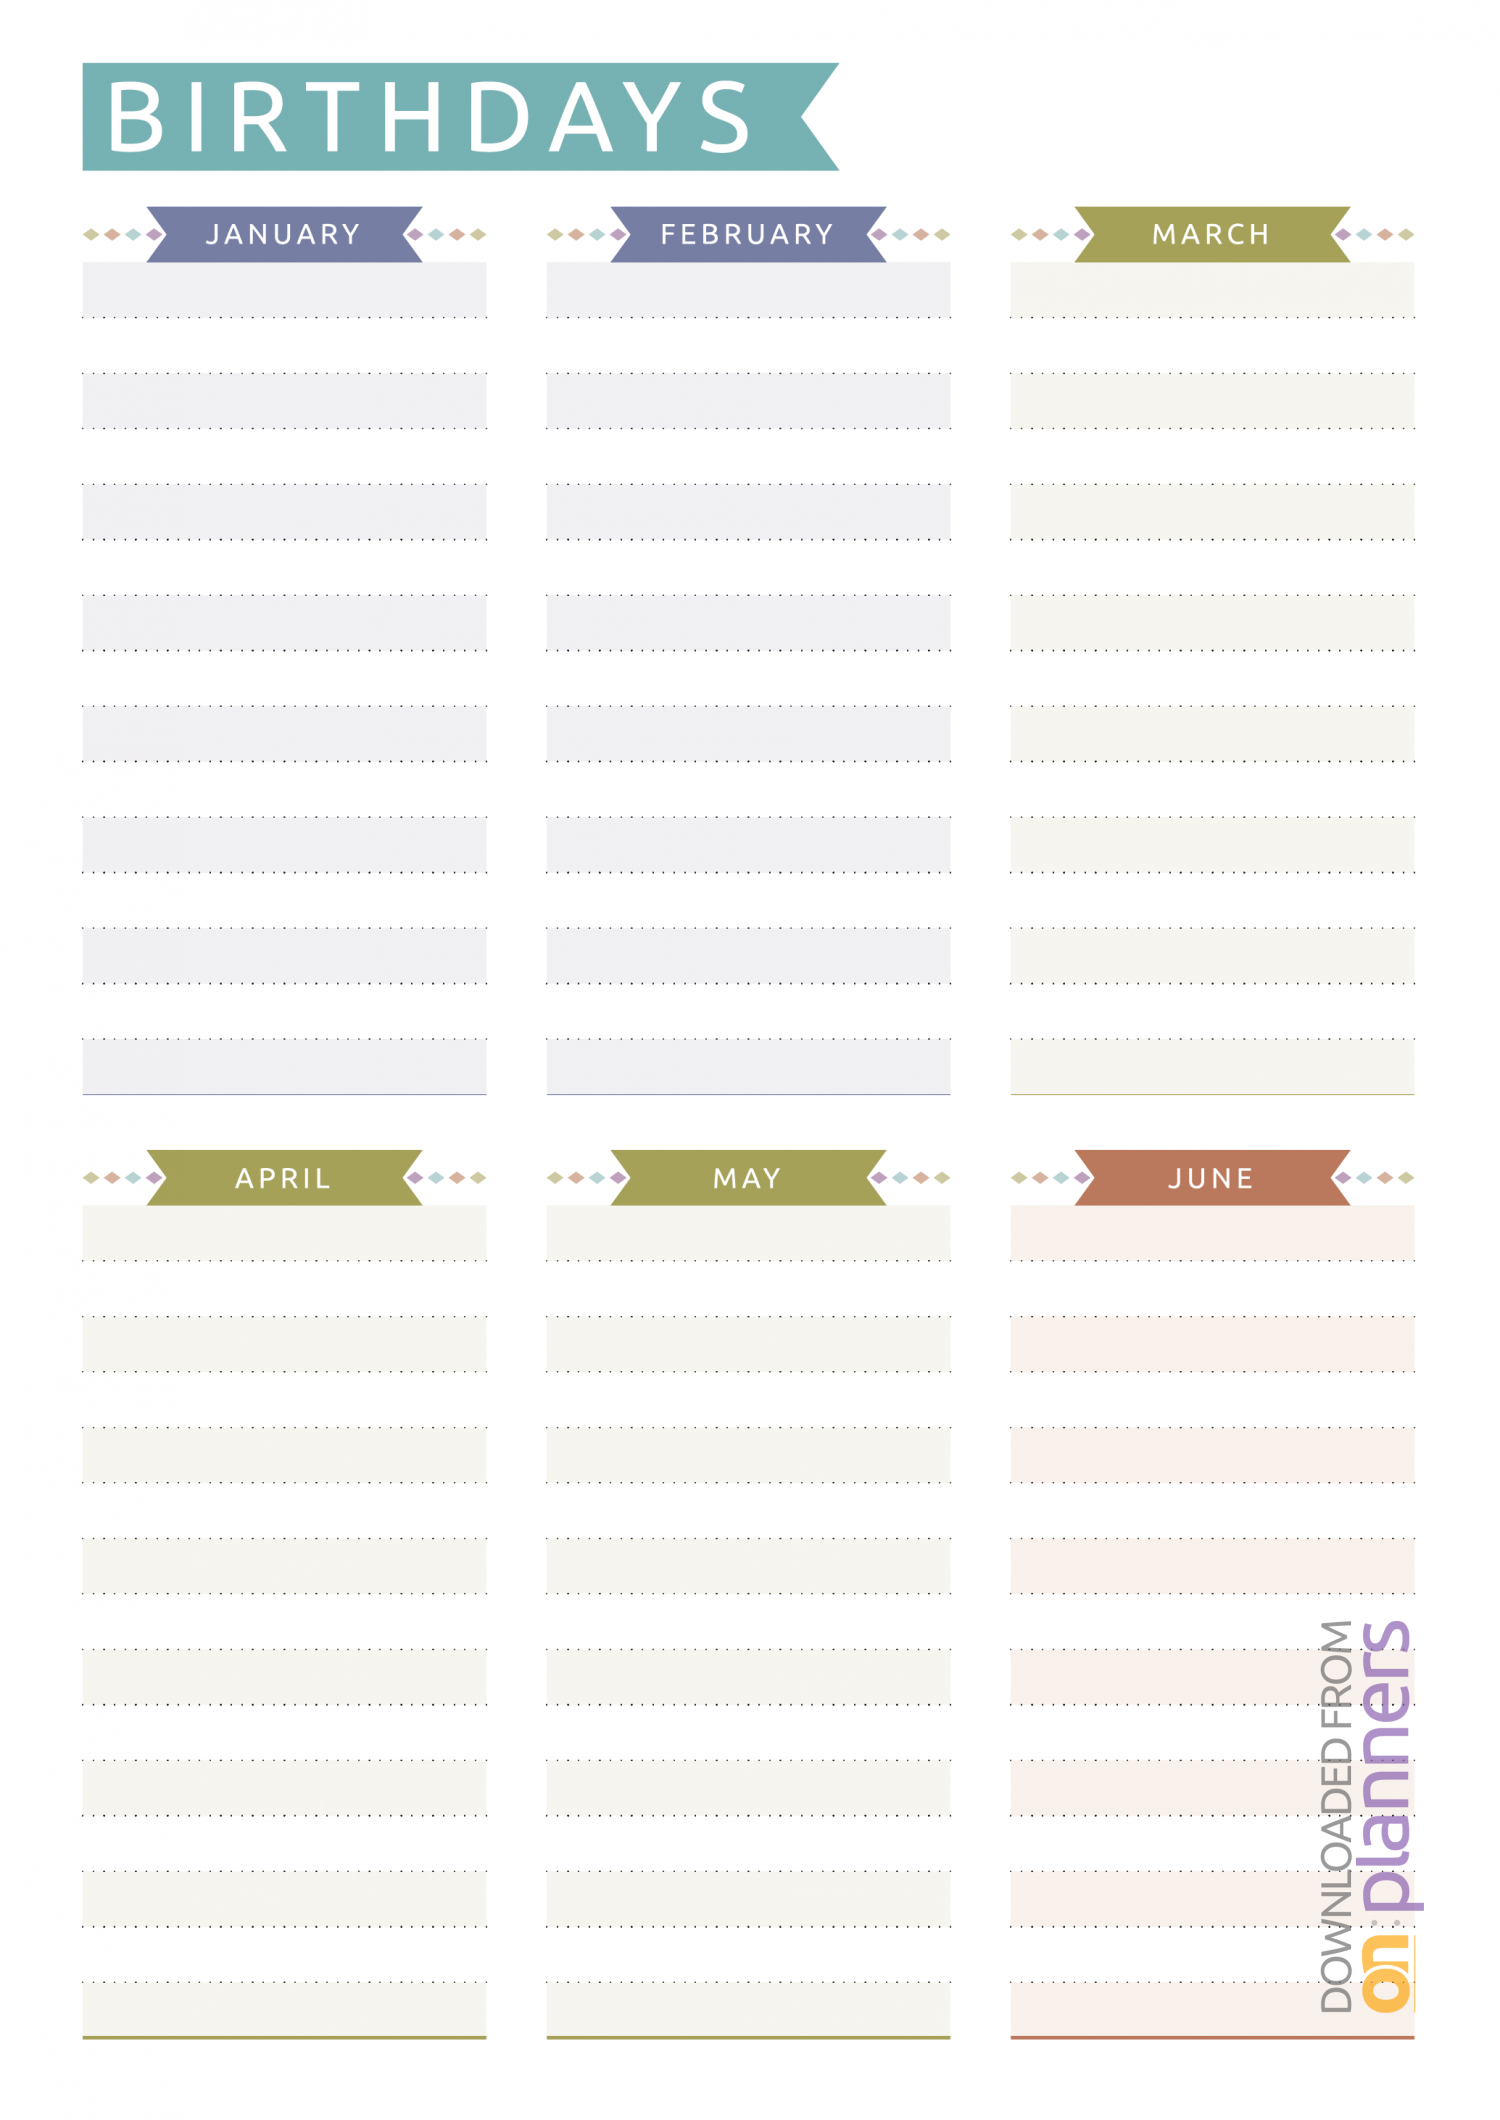 Download Printable Birthday Calendar  Casual Style Pdf in Yearly Birthday Calendar Template